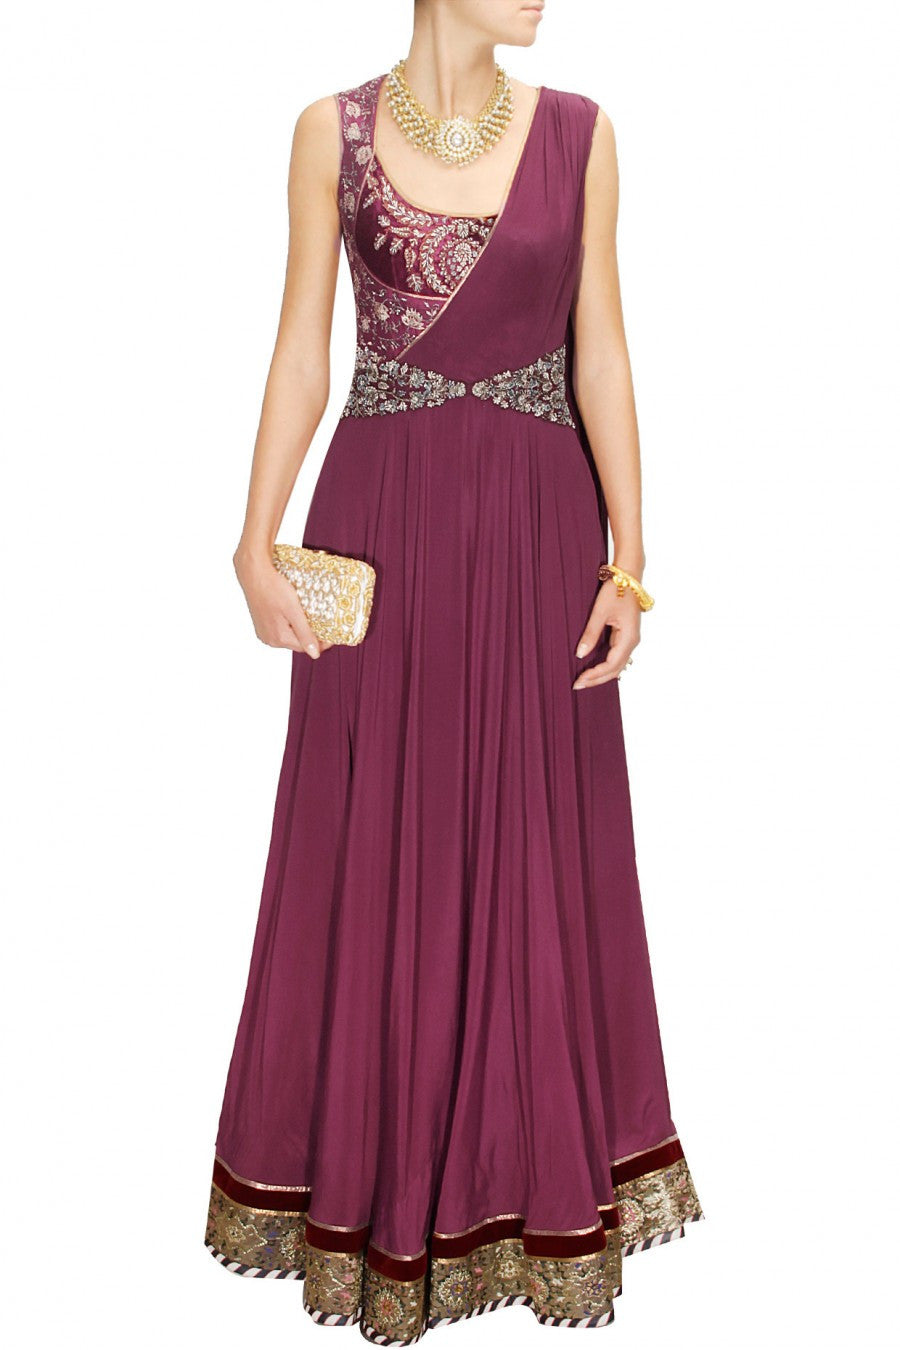 Maroon embroidered drape indo-western gown